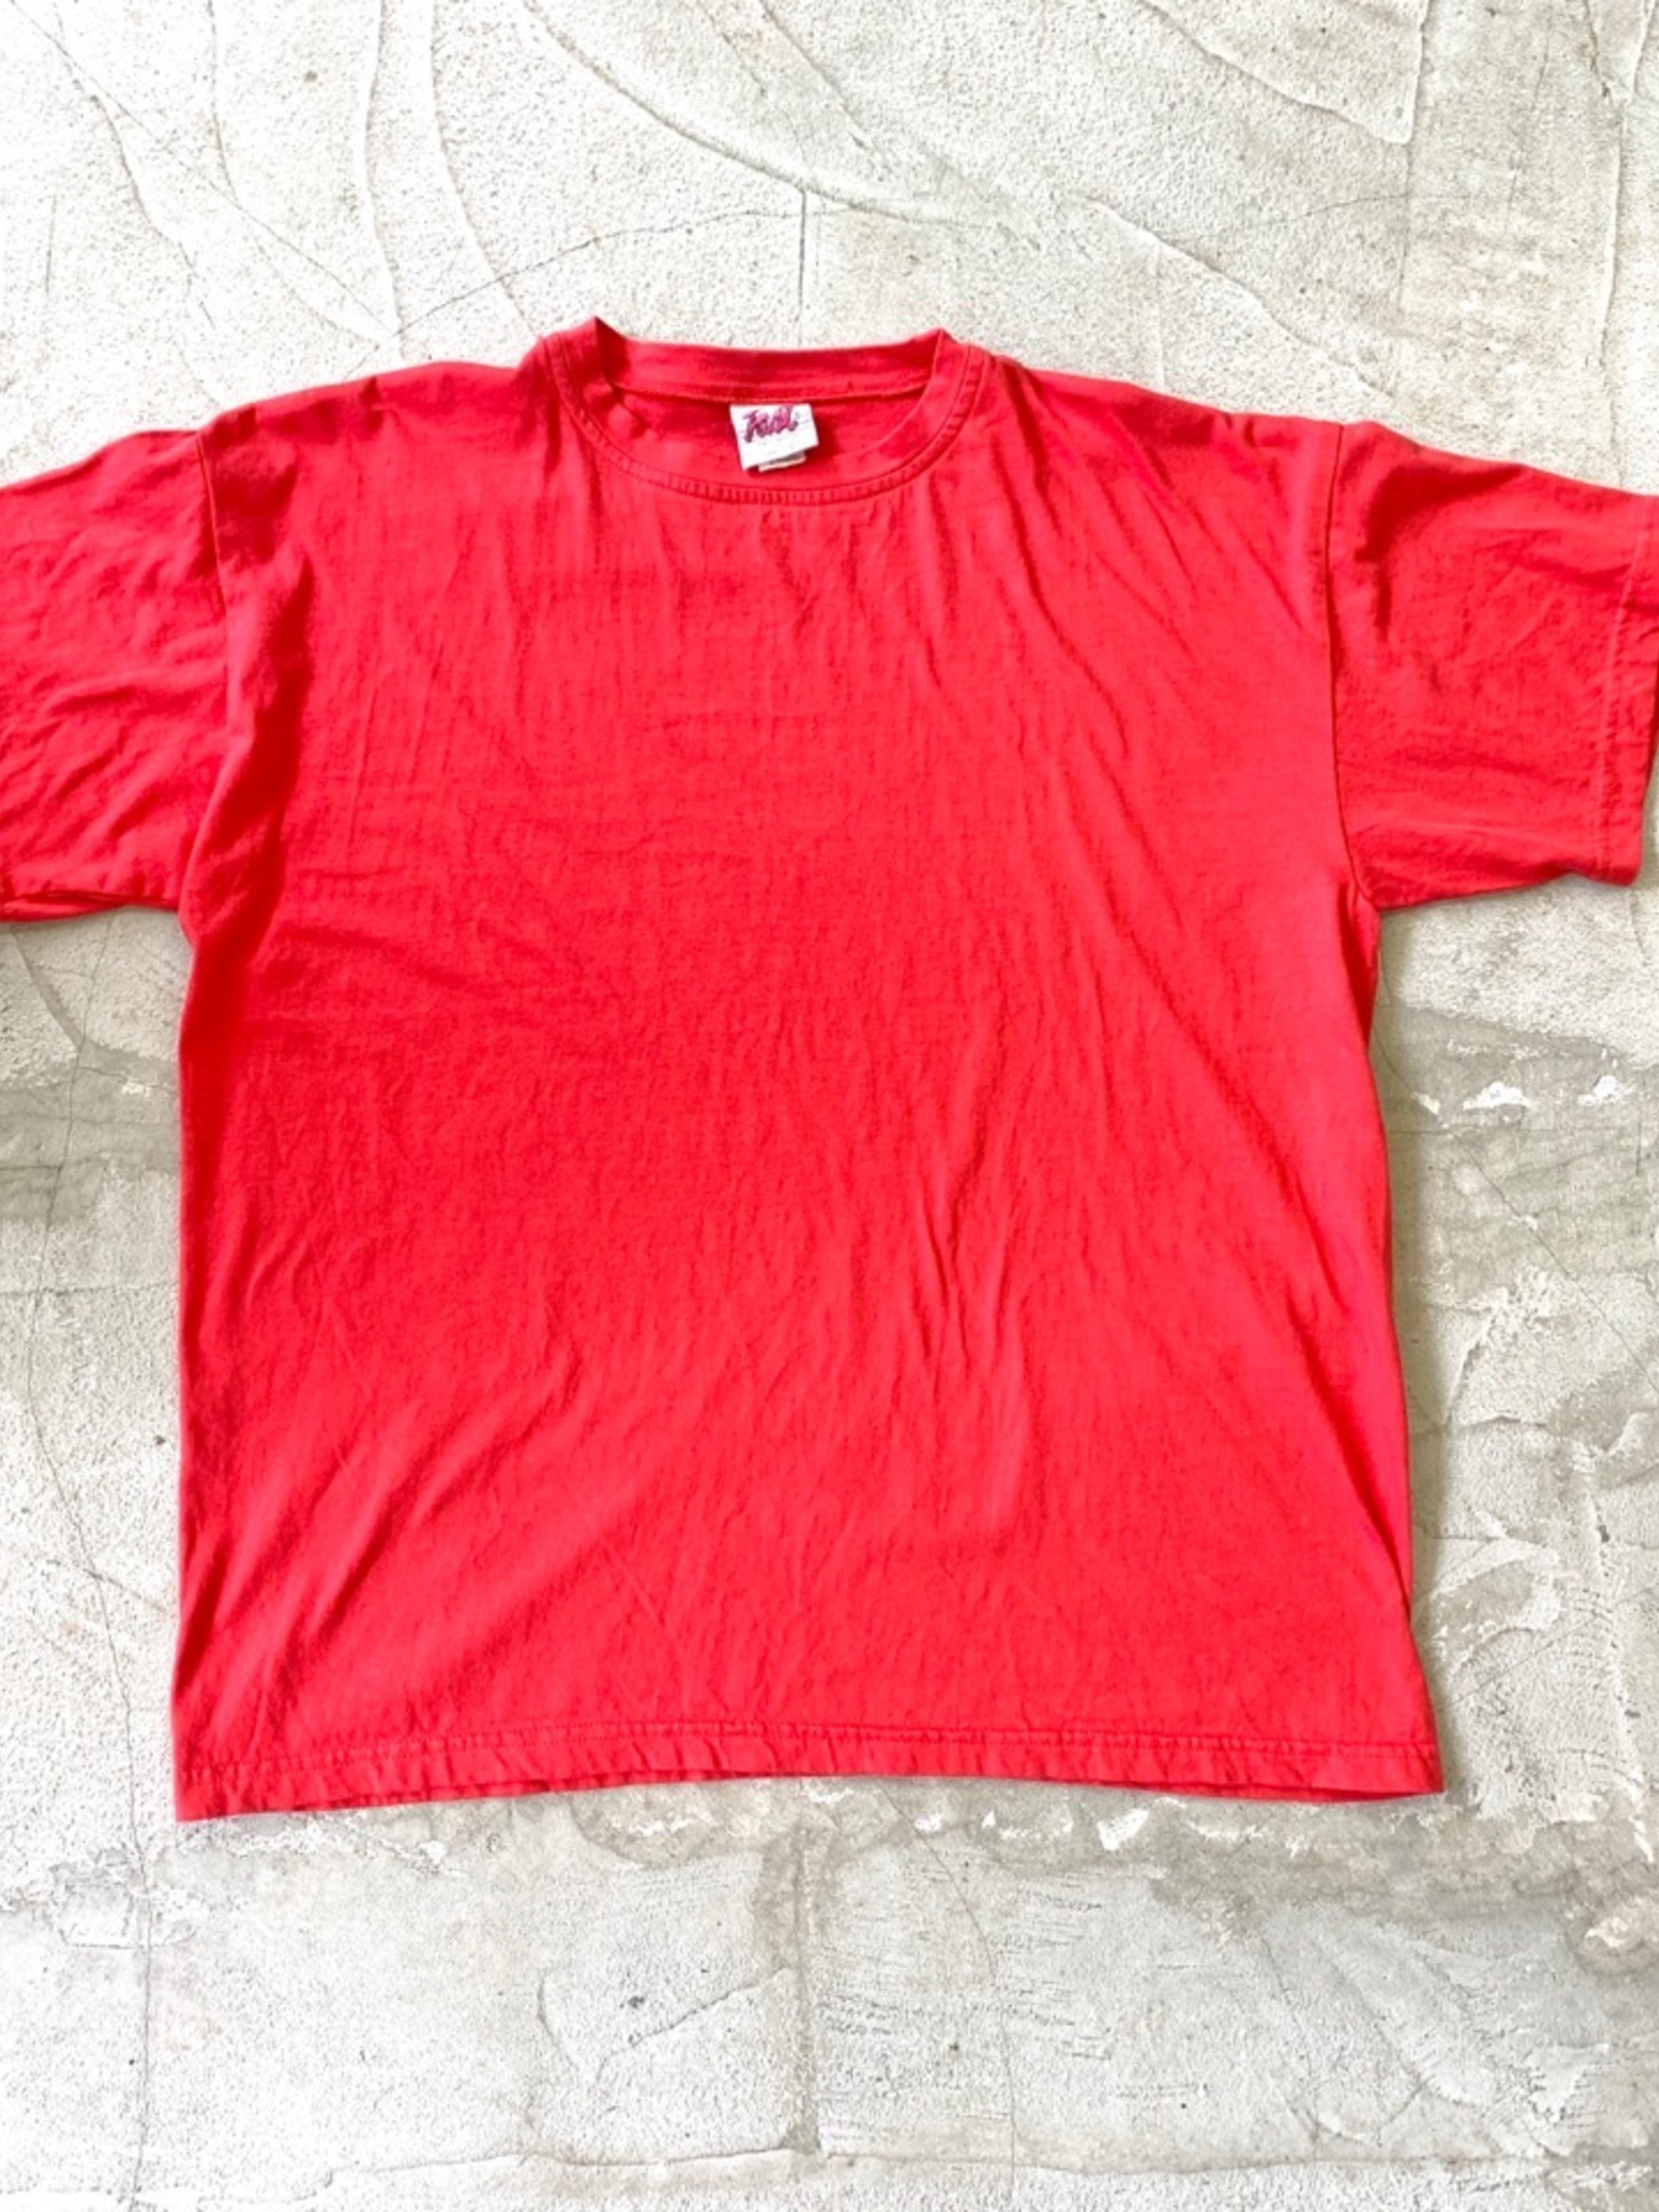 1980'〜 Dead stock over size t-shirt  Red color Made in USA